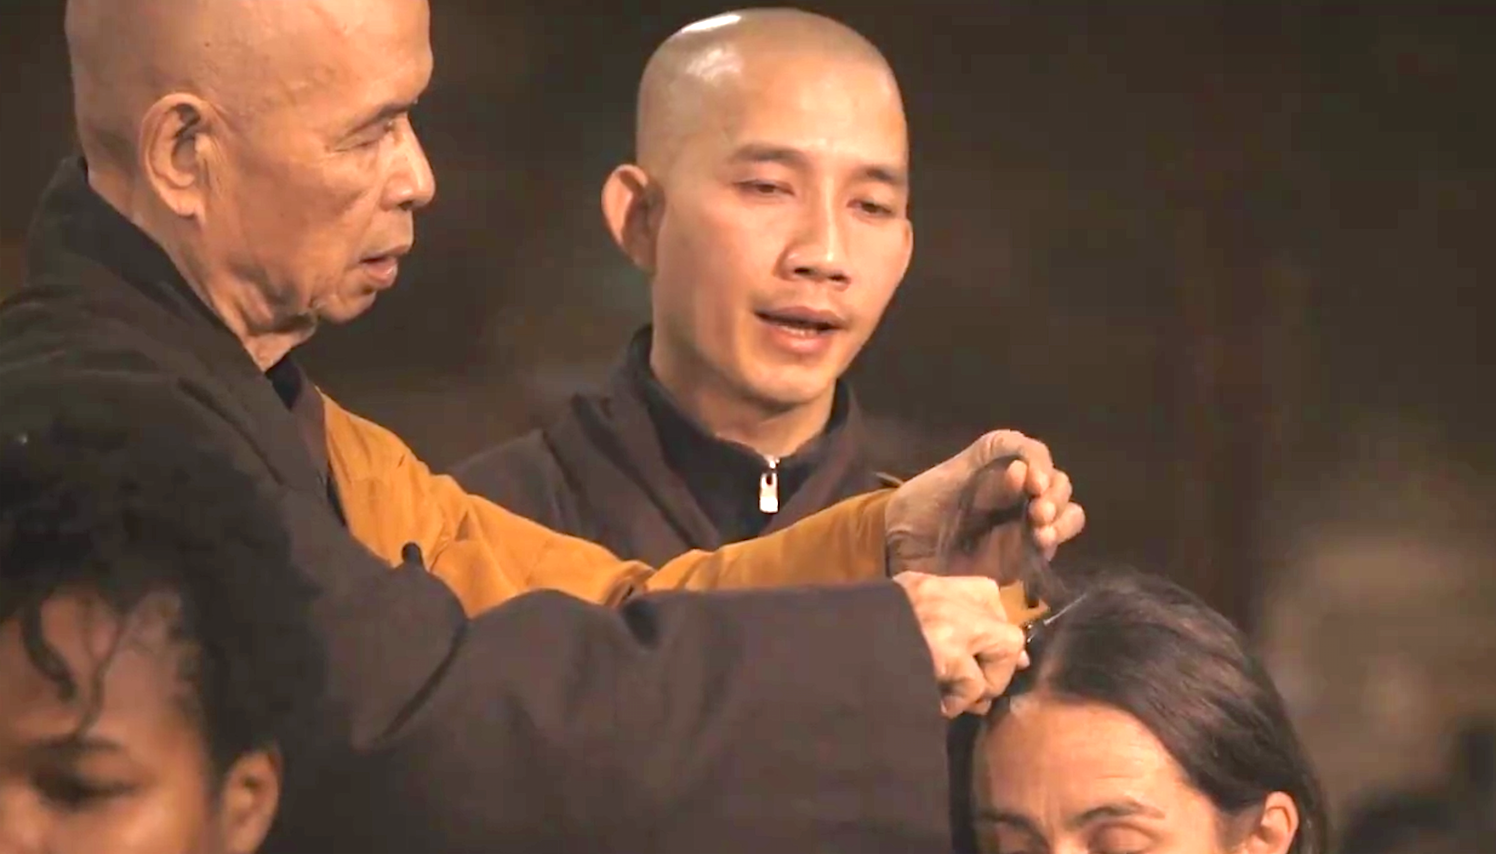 Walk With Me (2016), Thich Nhat Hanh